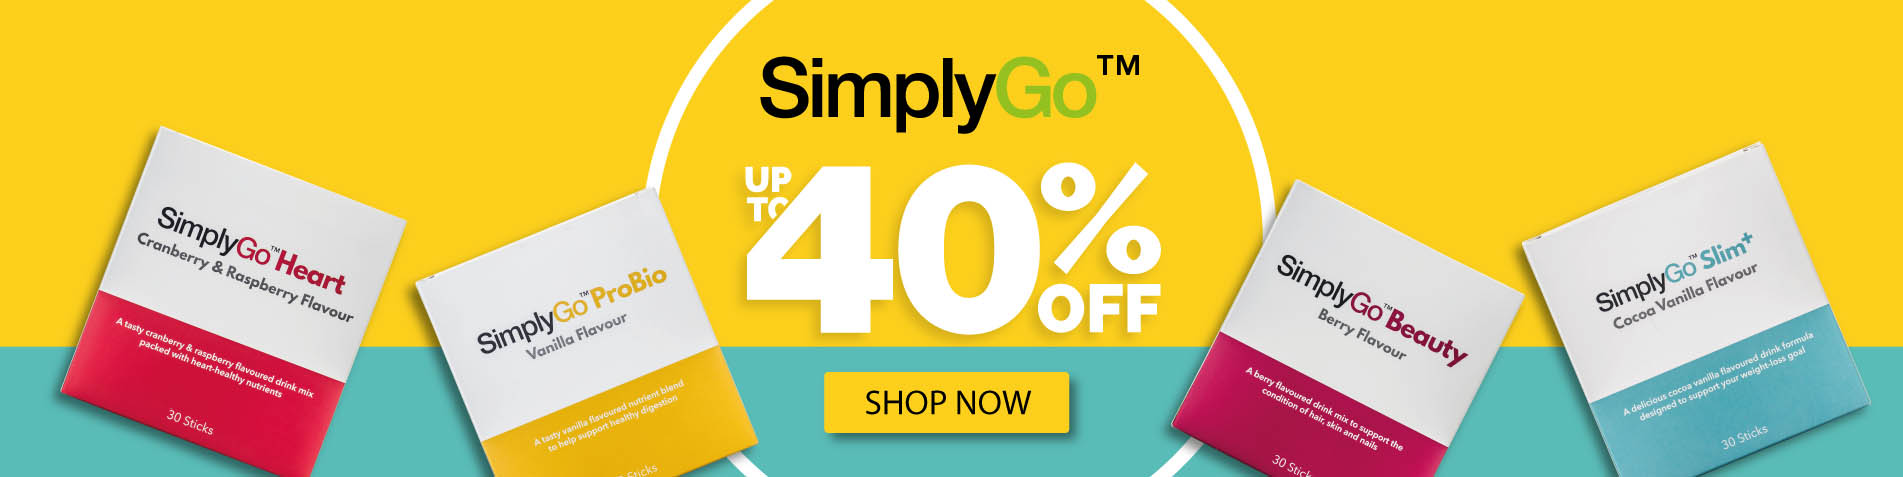 Shop the SimplyGo Range - up to 40% off